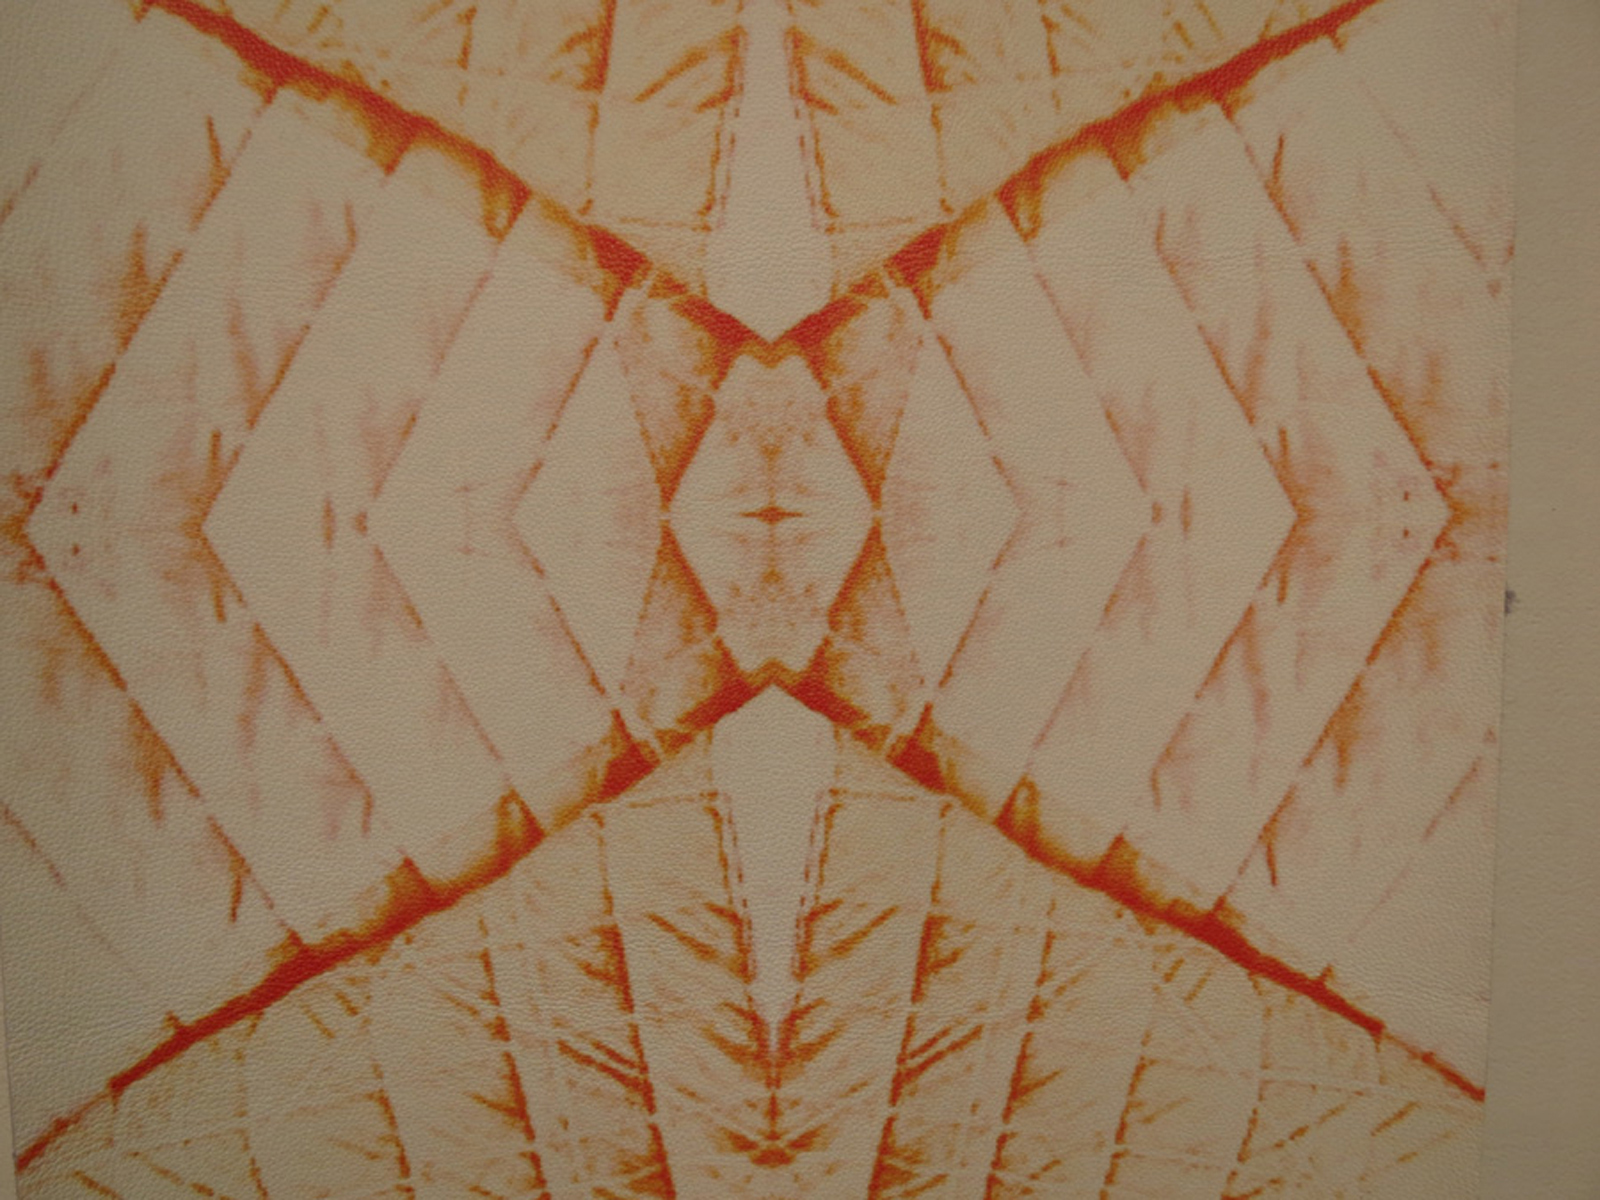 27.  Wanders - crossstitch 2  (detail), Richelle Doney, leather wallpaper, $730 per drop